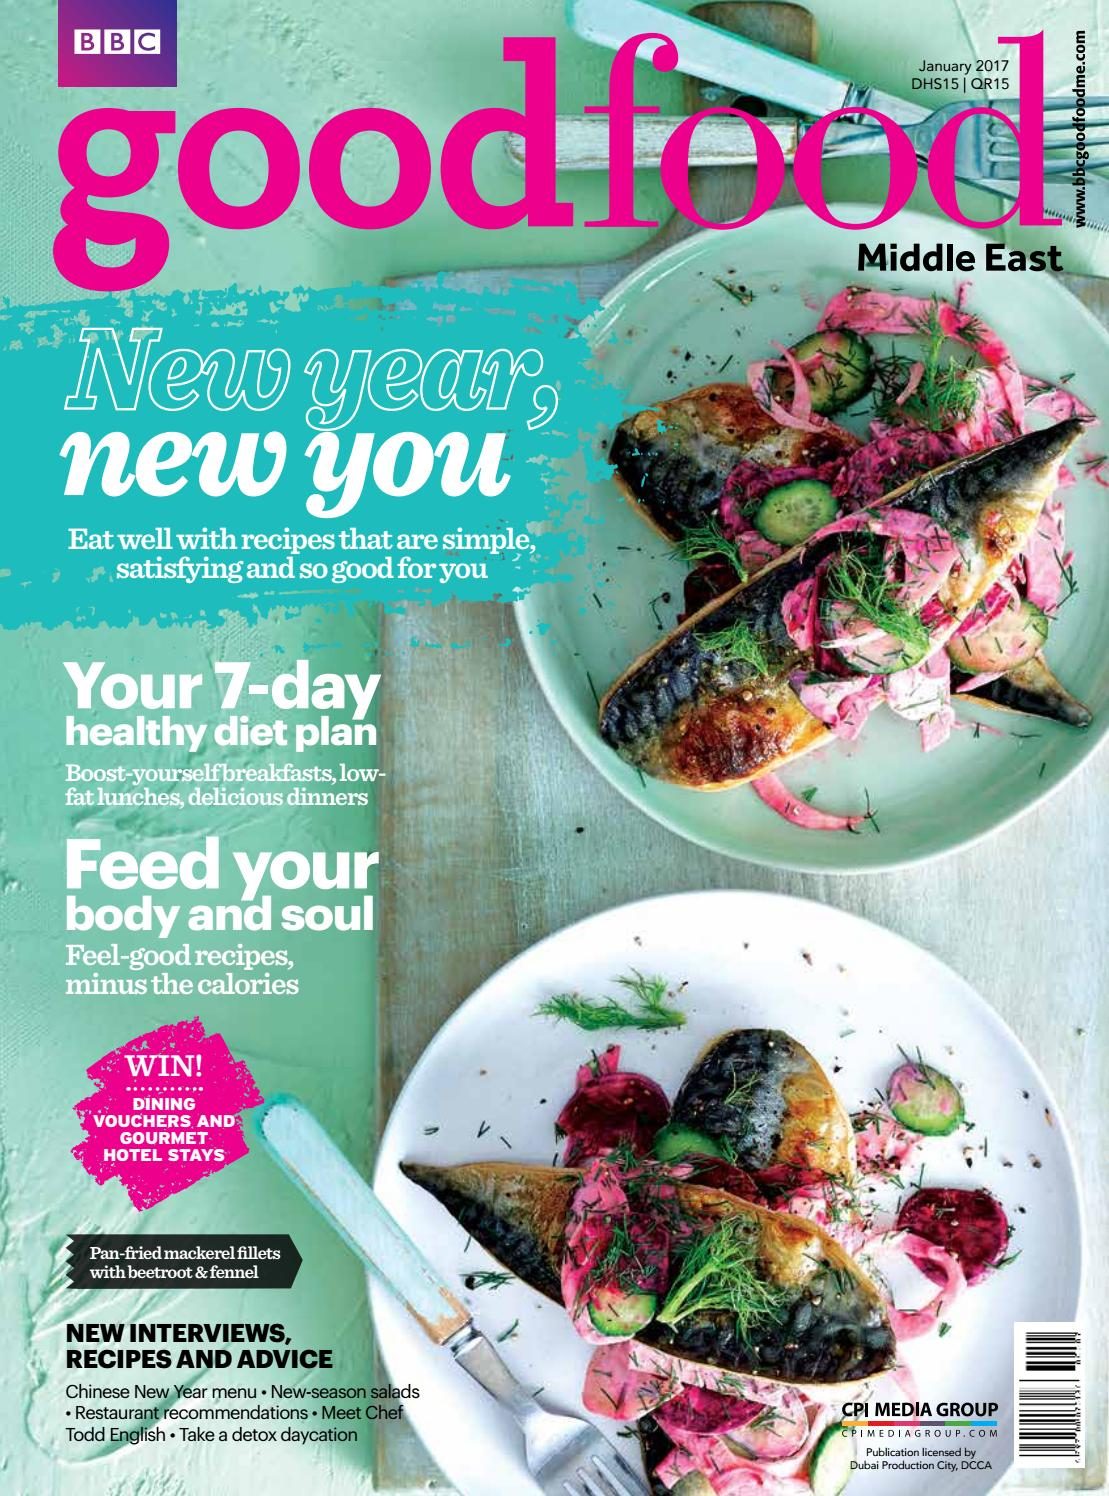 BBC Good Food ME - 2017 January by BBC Good Food ME - issuu